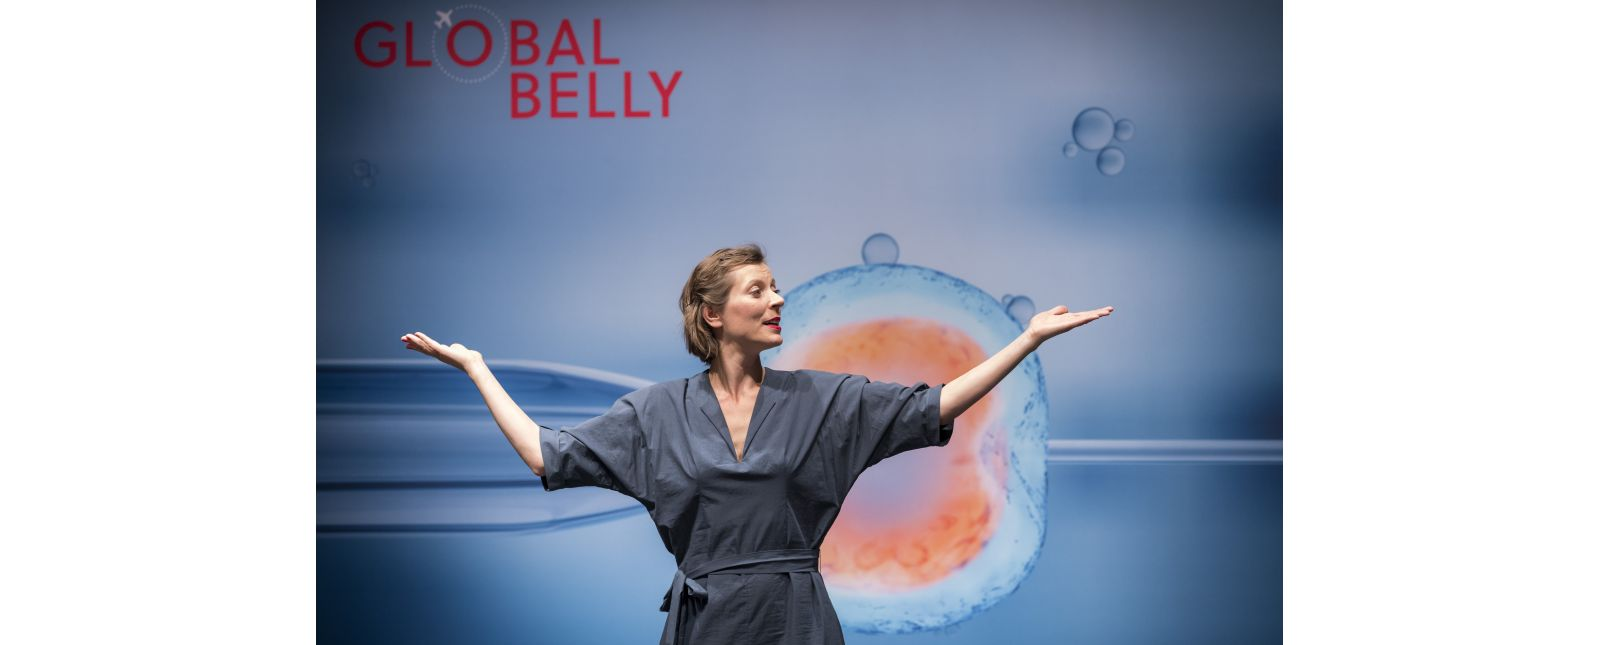 GLOBAL BELLY // Stefanie Mrachacz // 2020 // Marc Doradzillo